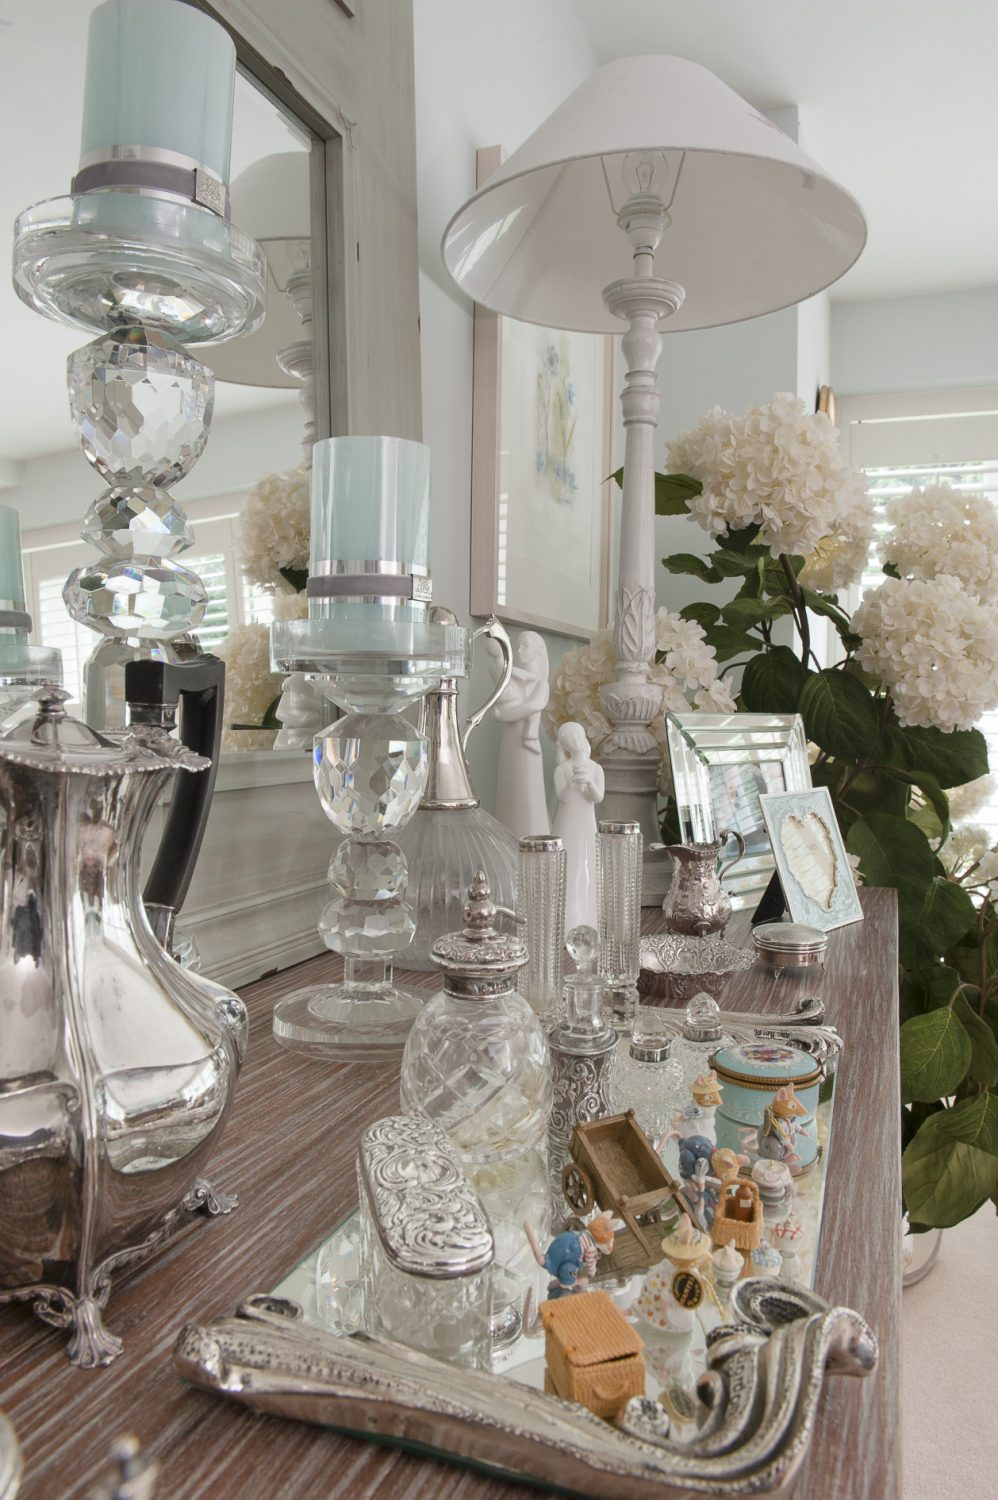 At the other end, an oak-topped painted dresser displays a collection of silver and Venetian glass-framed family photographs, glass candlesticks and silver-topped glass decanters